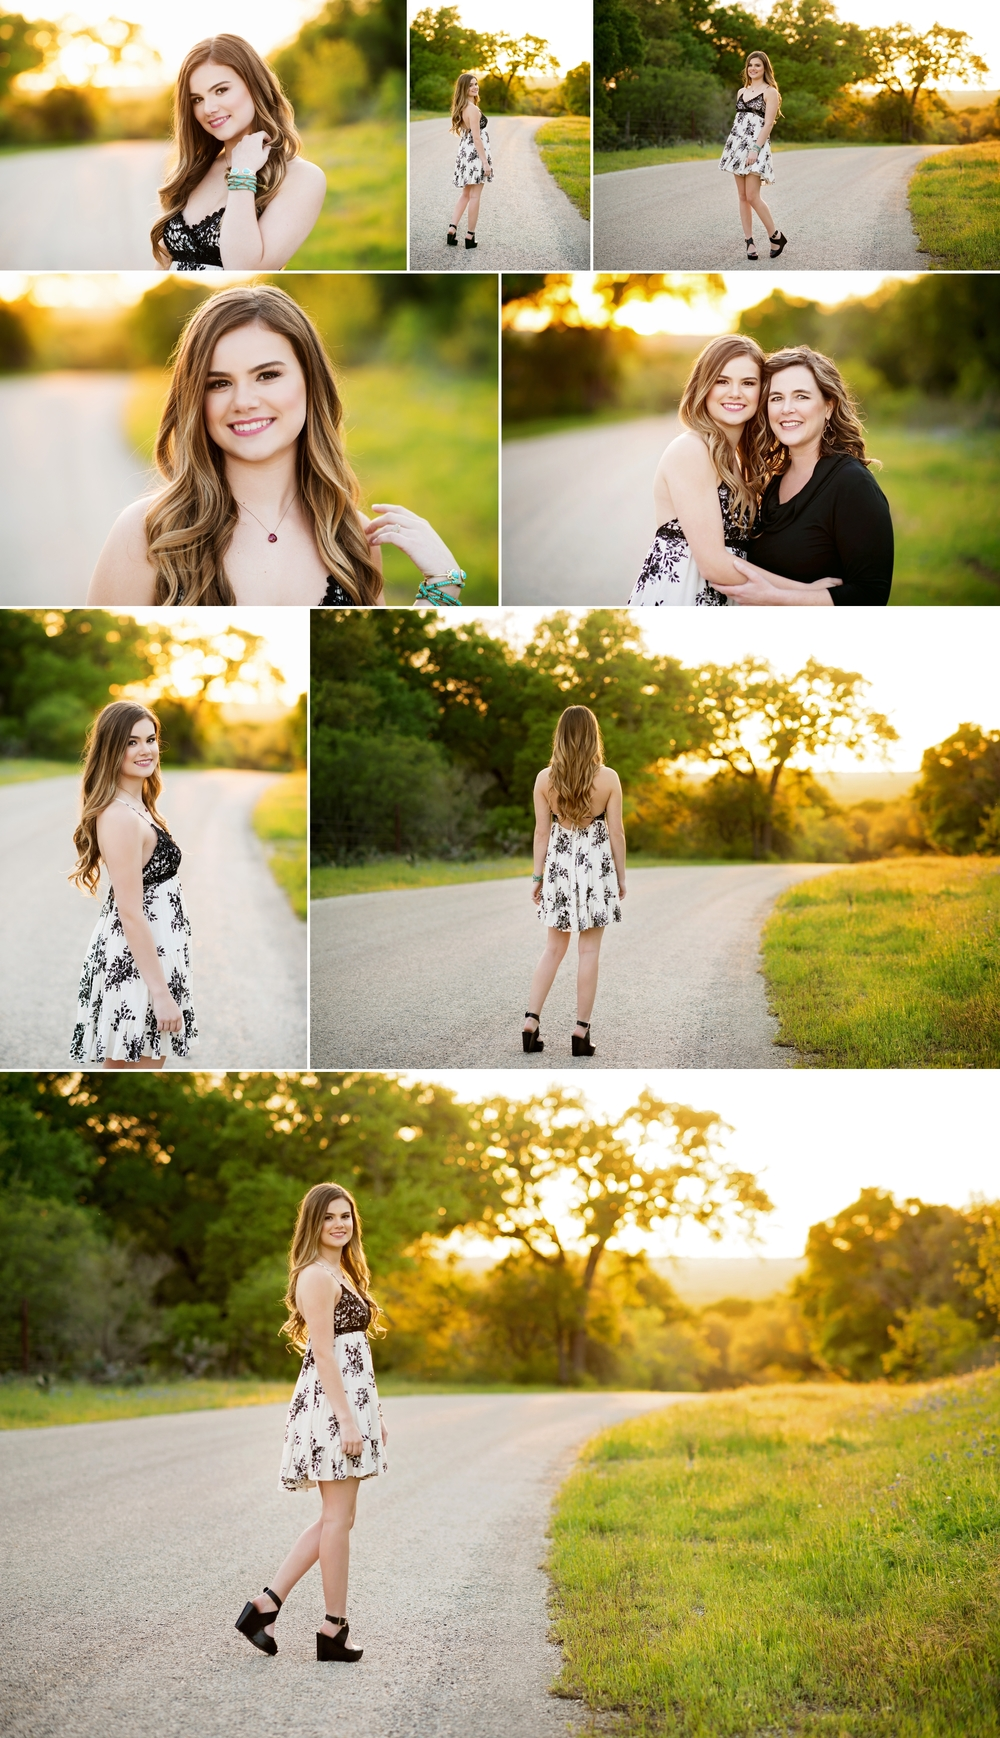 Austin High, Senior Portrait ideas, country road, sunset, country road, sundress, Kyle, TX, Heidi Knight Photography.jpg